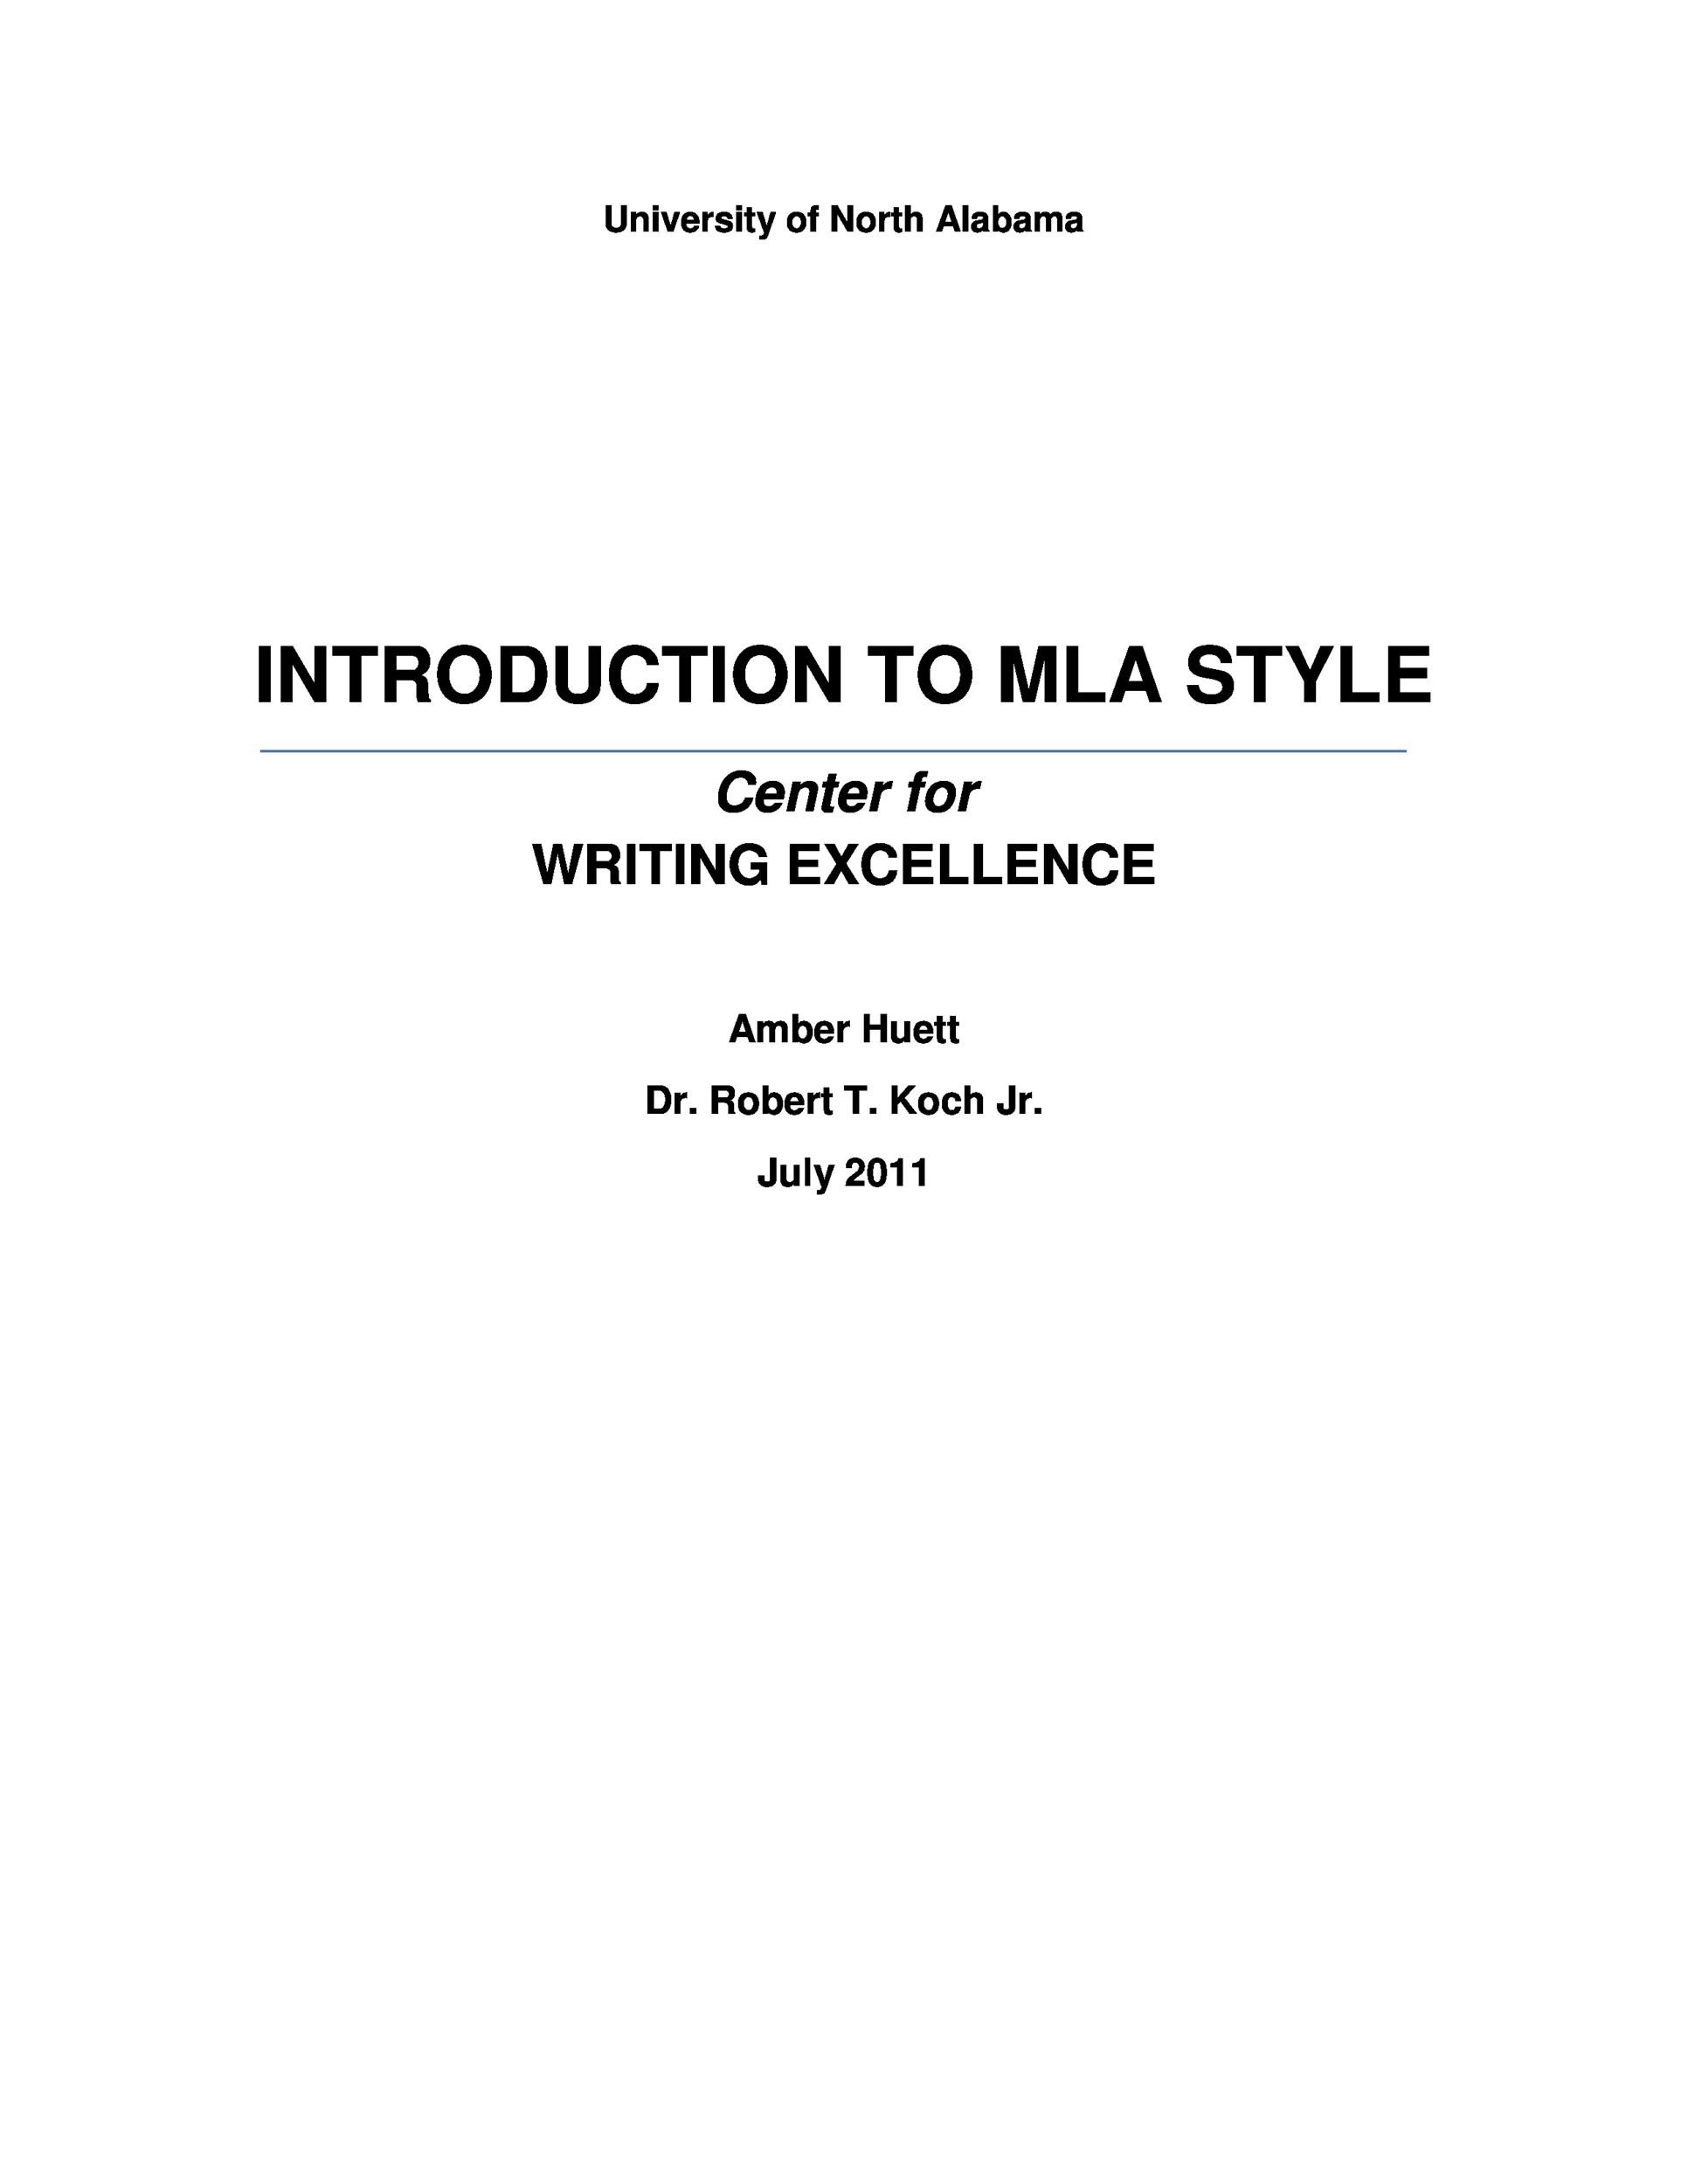 Free mla format template 09